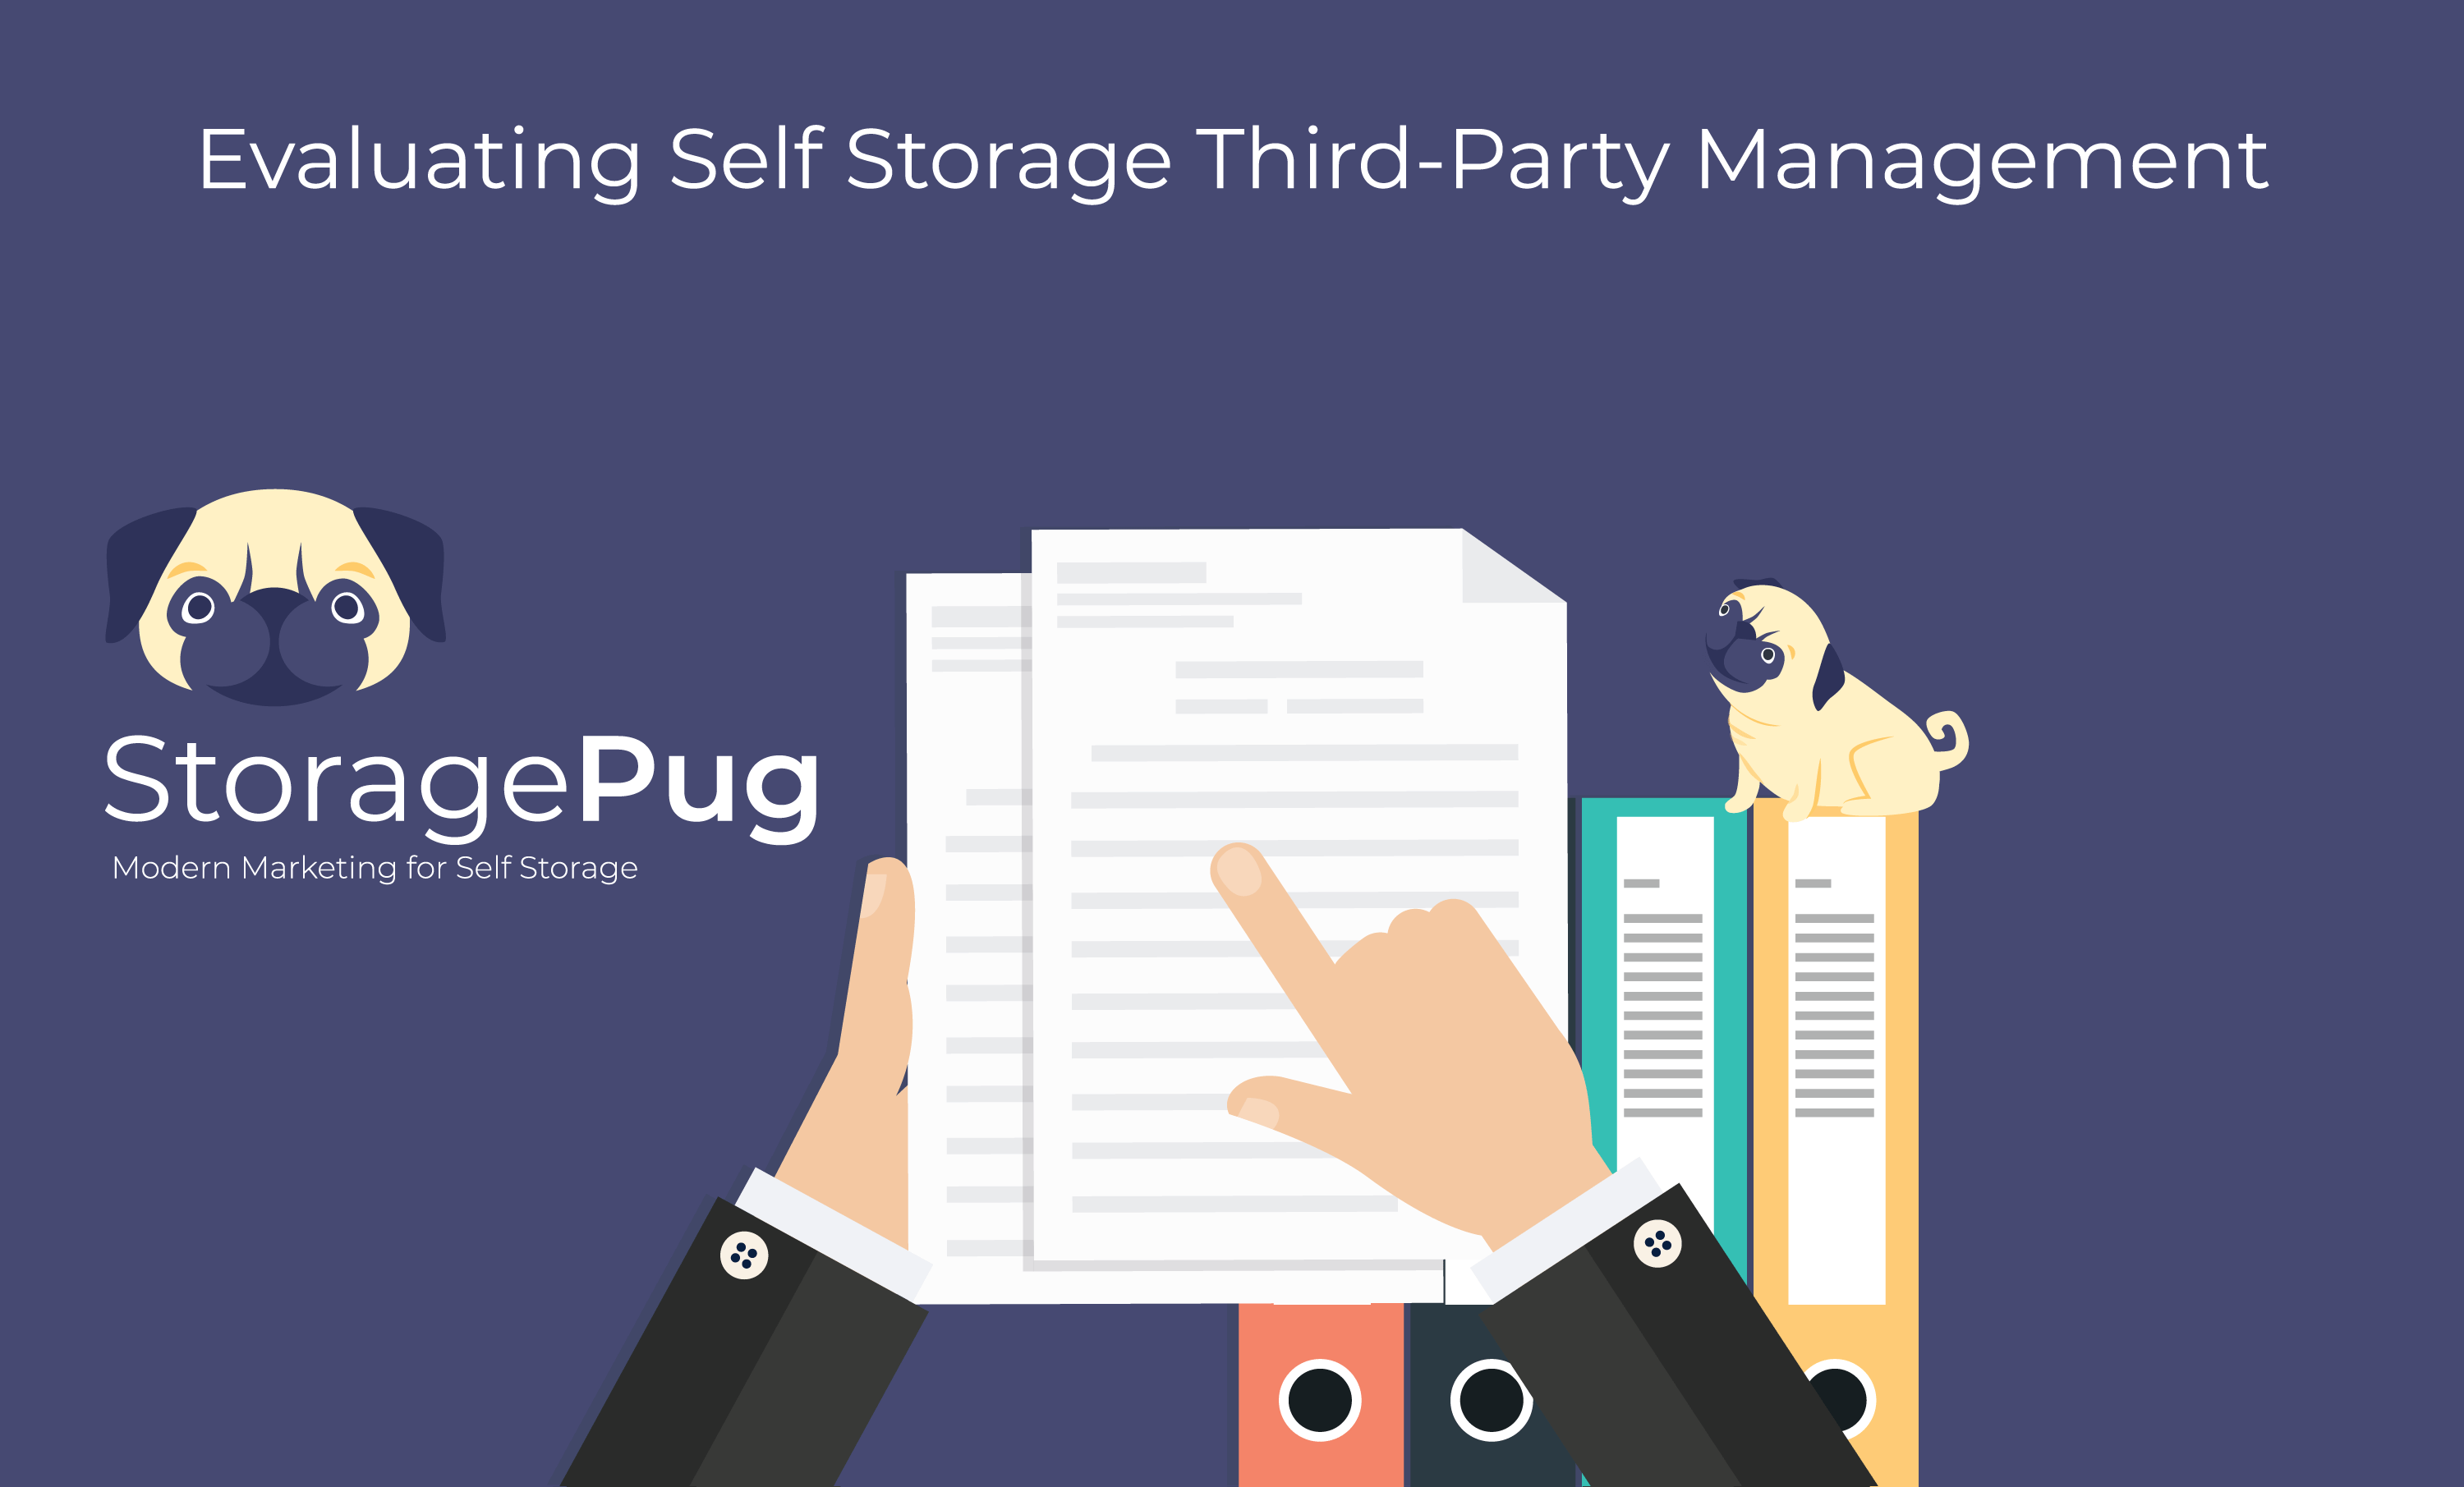 Many self storage owners rely on third parties for improved profitability, faster time to market, competitive advantage, and decreased time spent on day-to-day operations.